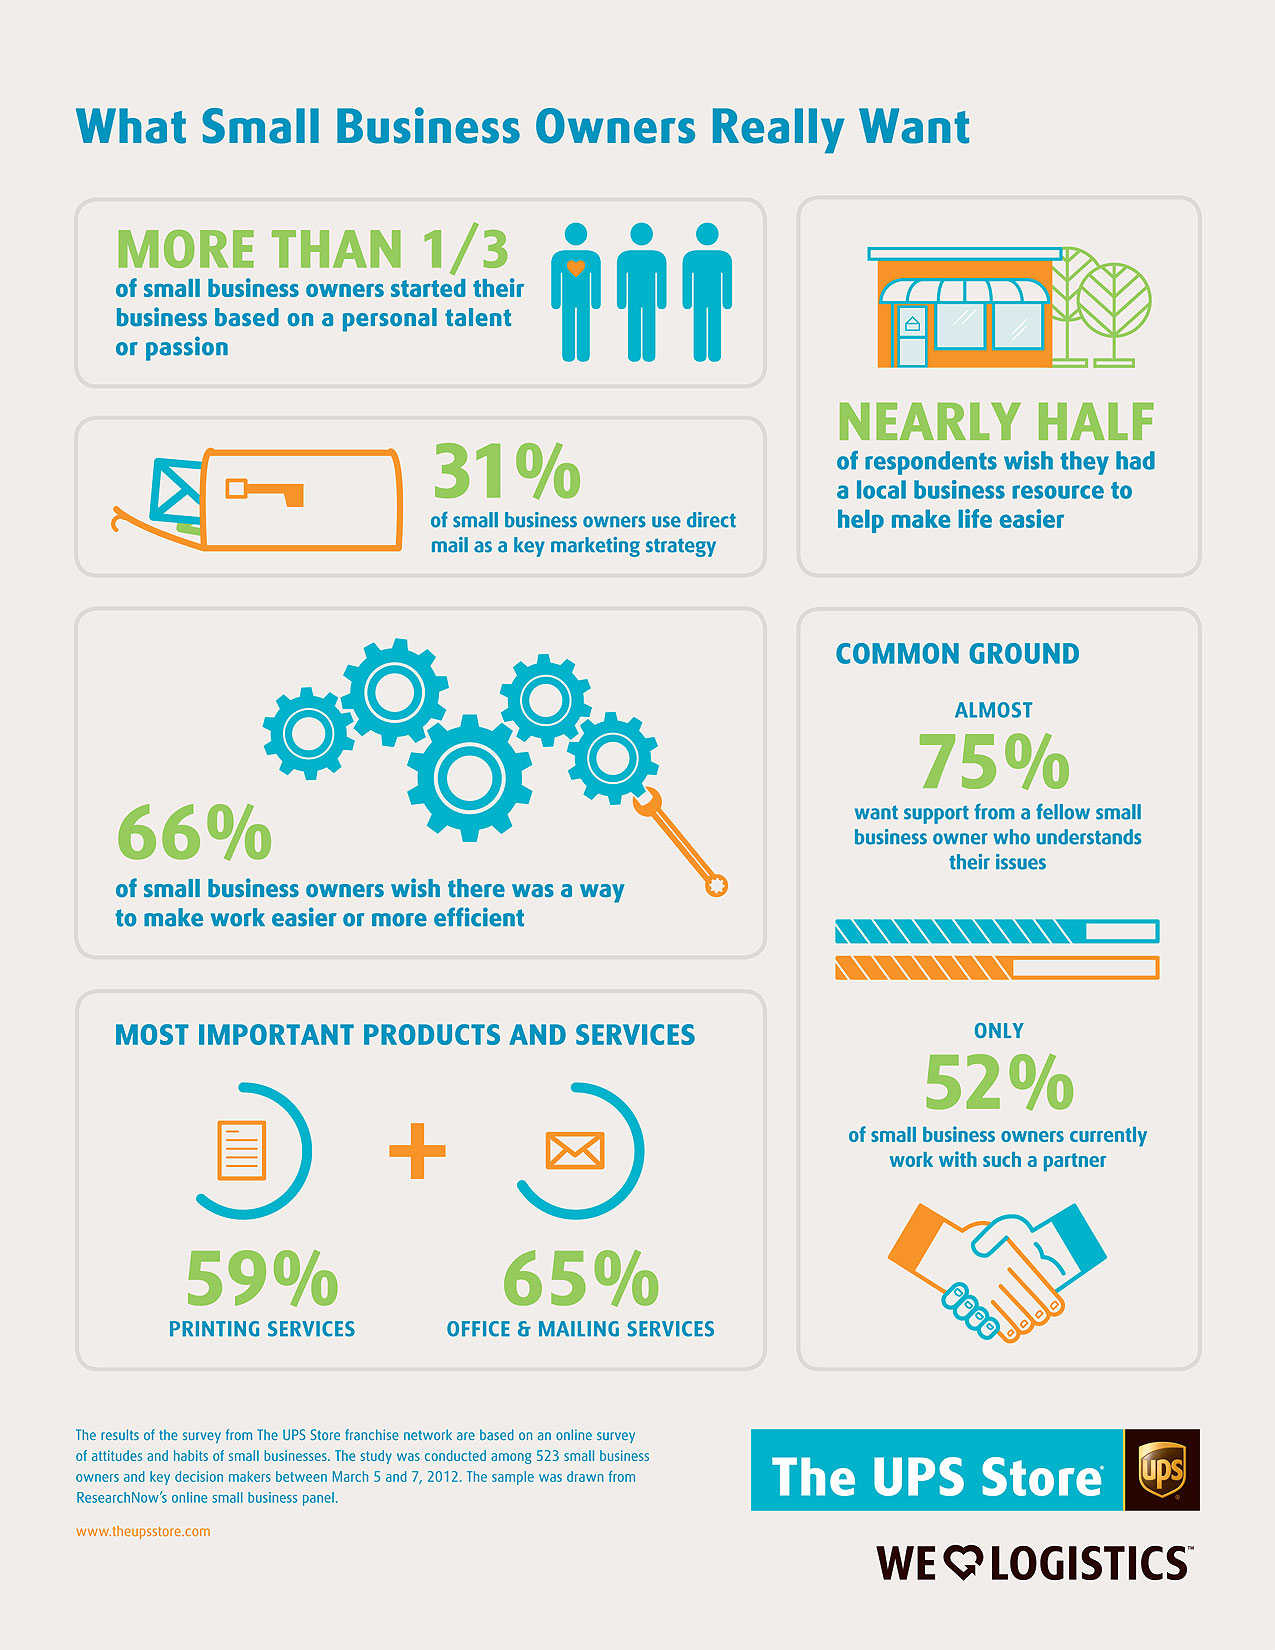 What Small Business Owners Want Infographic